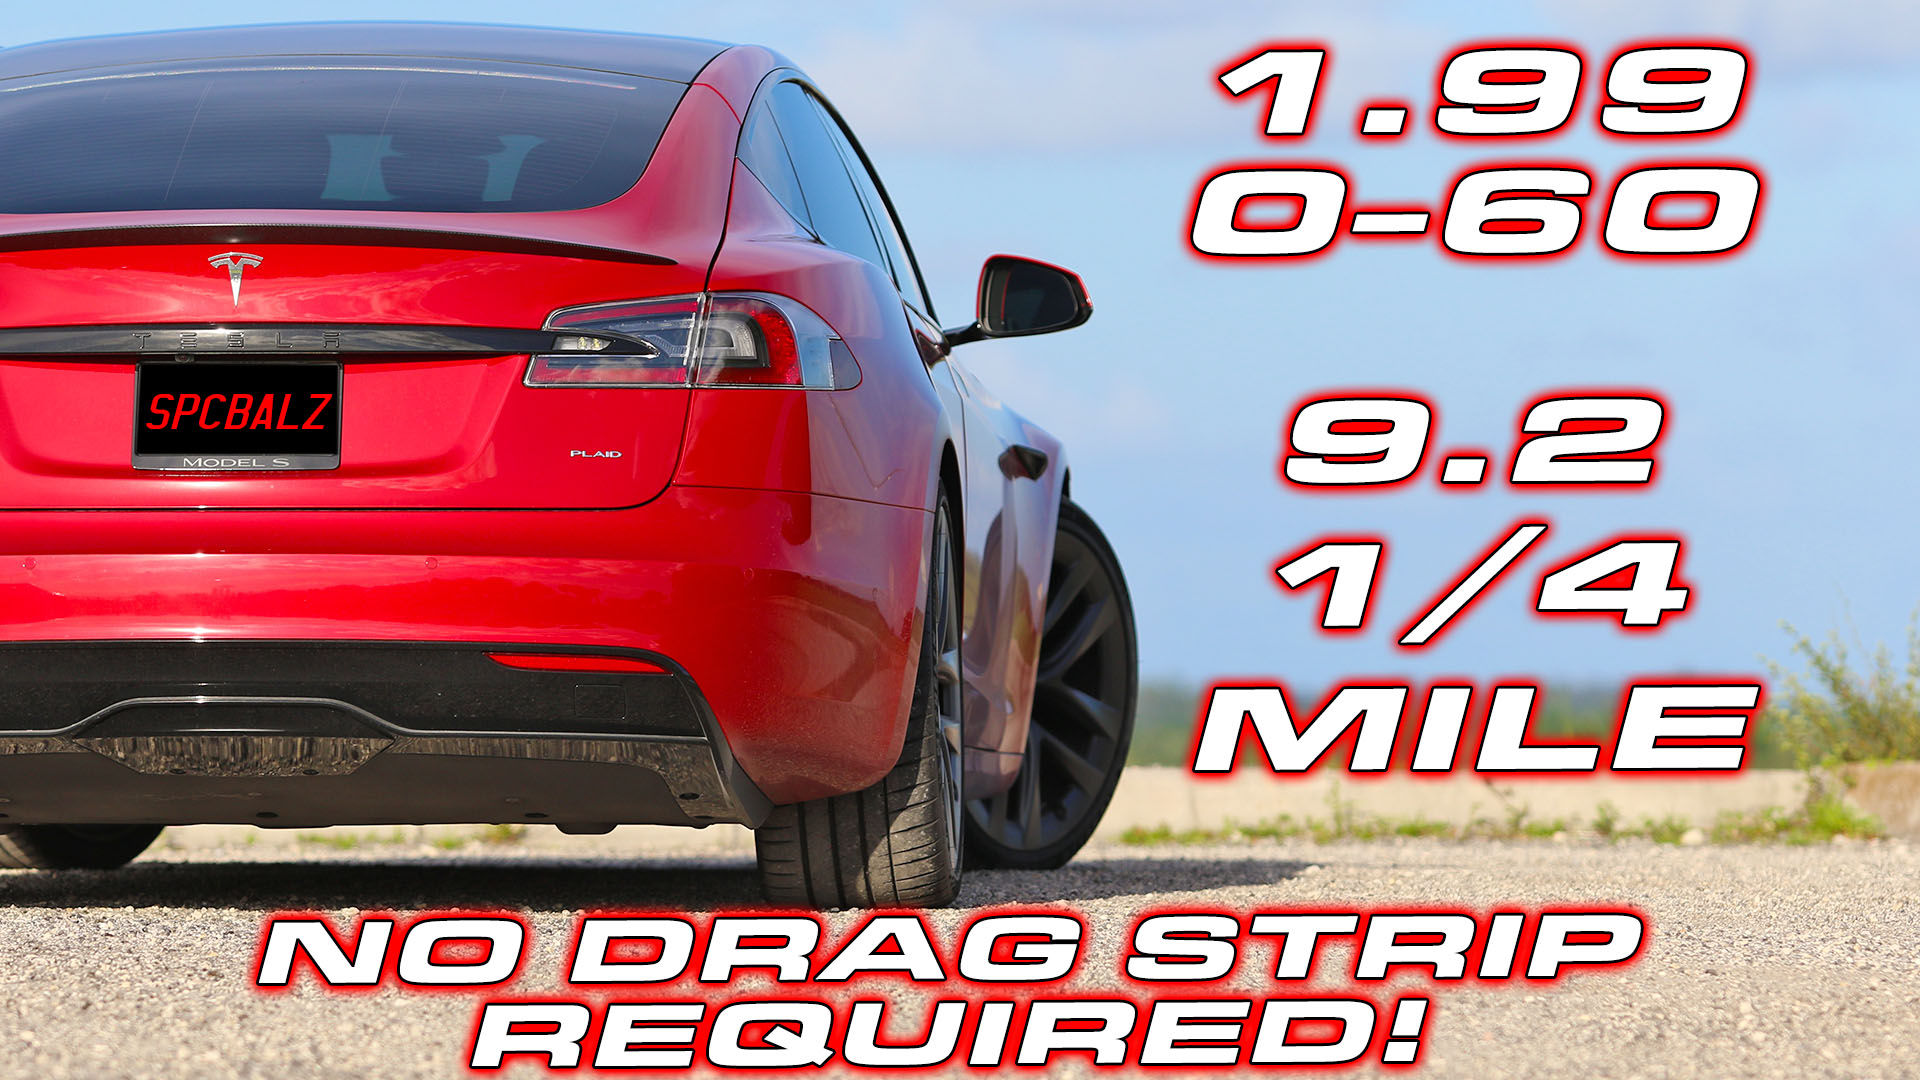 Tesla Plaid Model S runs 0-60 MPH in 1.99 Seconds on the Street